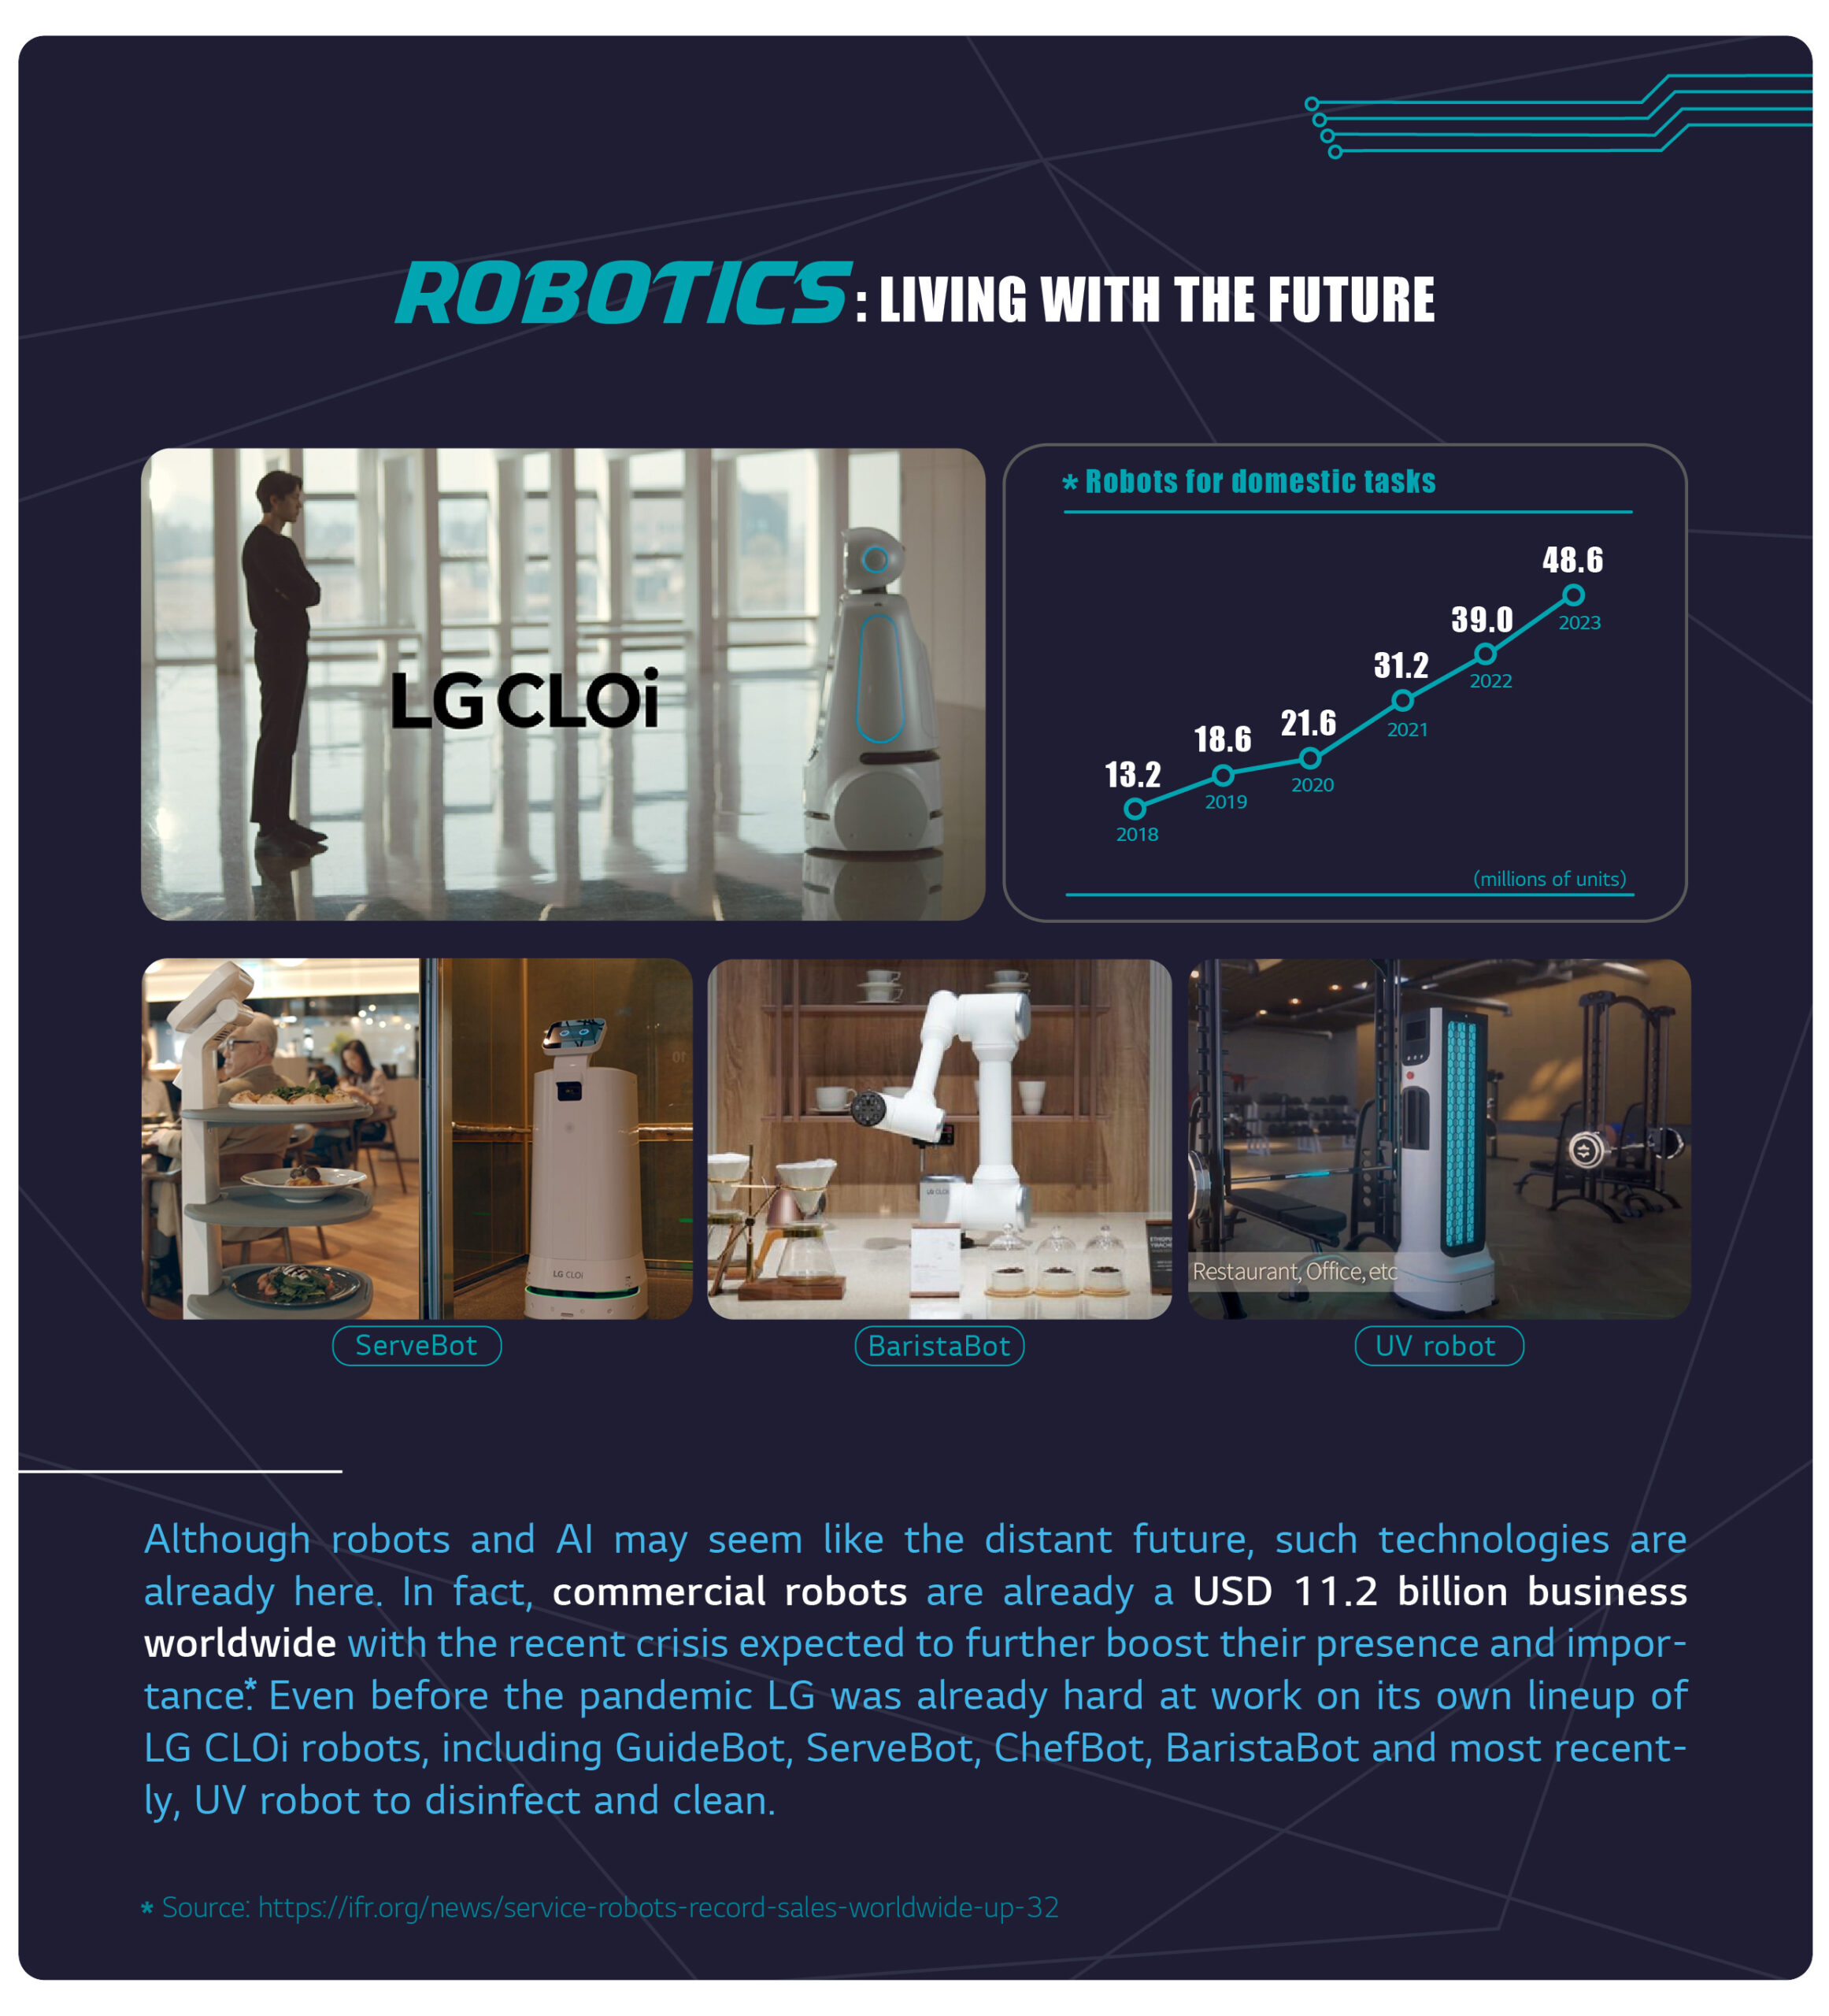 The page introducing LG's robotics with photos of various CLOi robots used for different purposes.